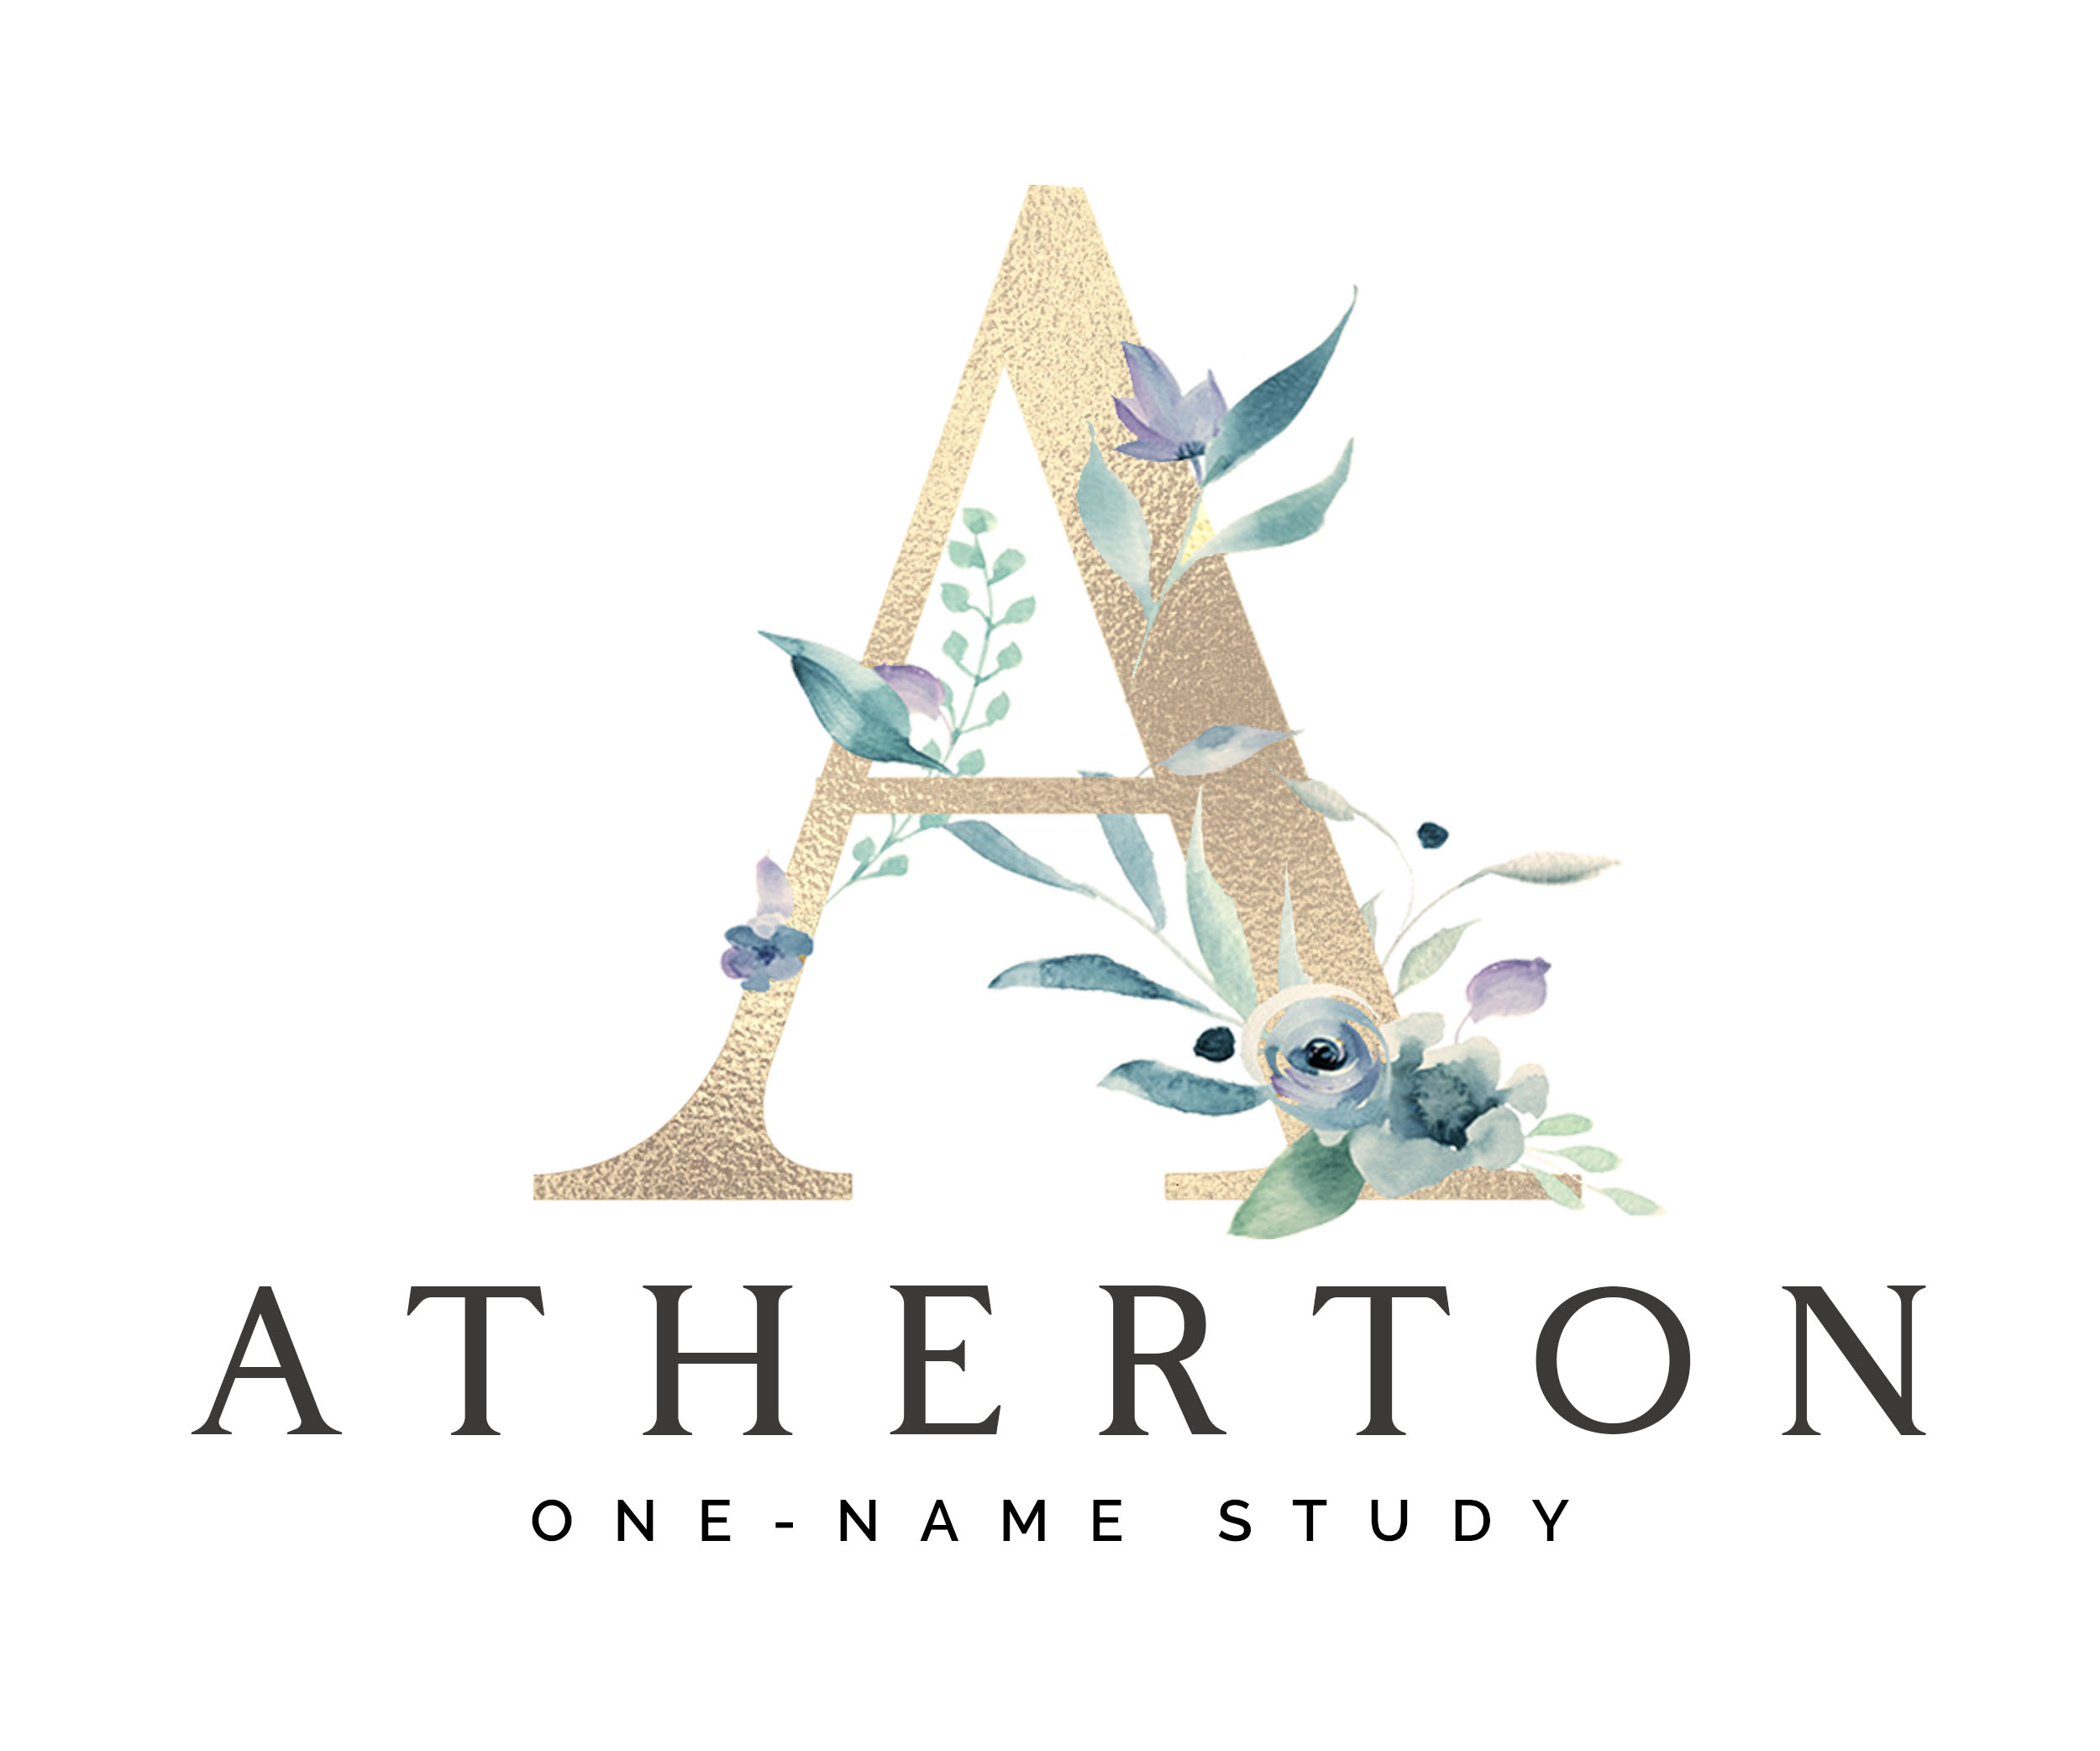 Atherton One-Name Study